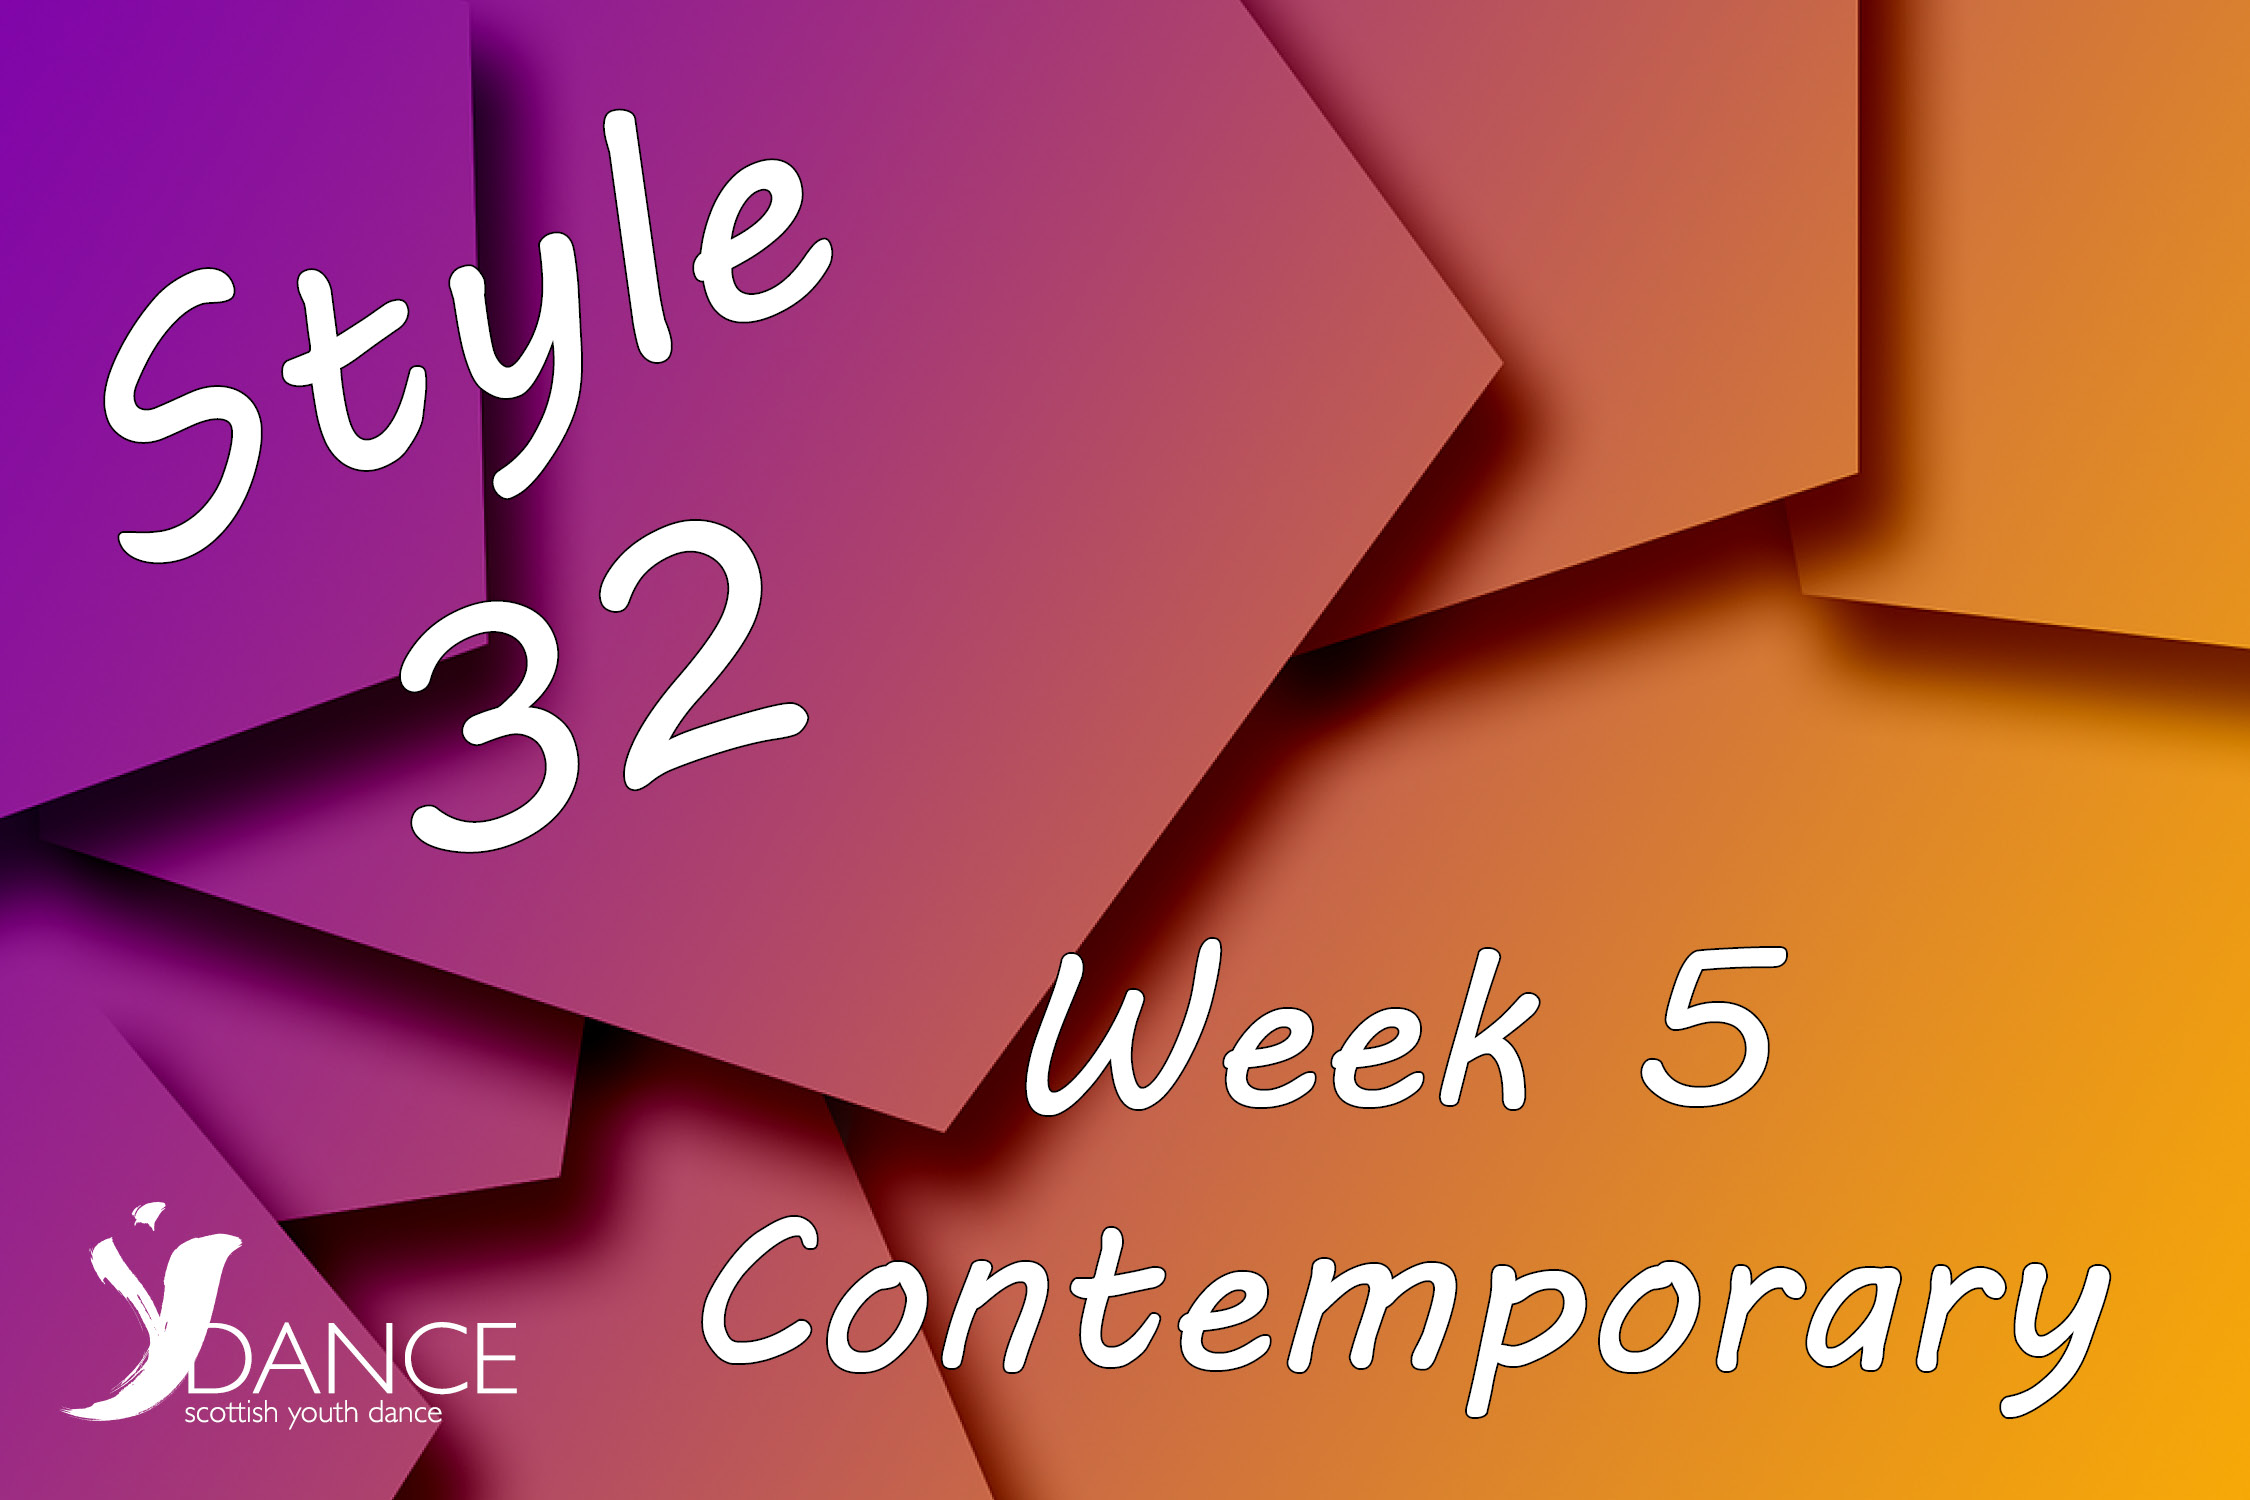 Style32 - Wk5 - Contemporary